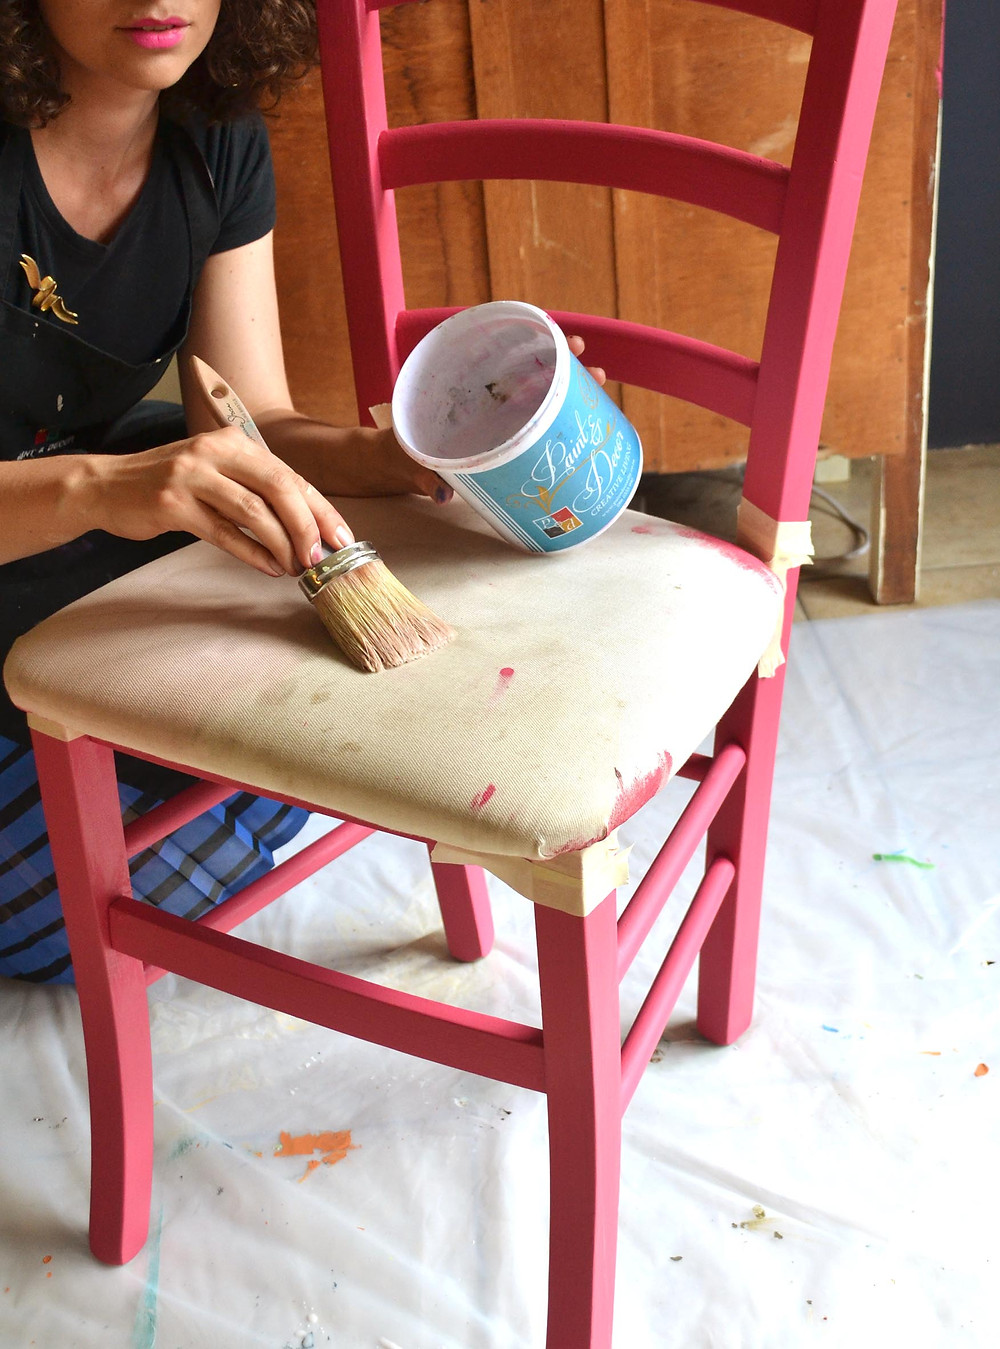 Wet the upholstery with water first